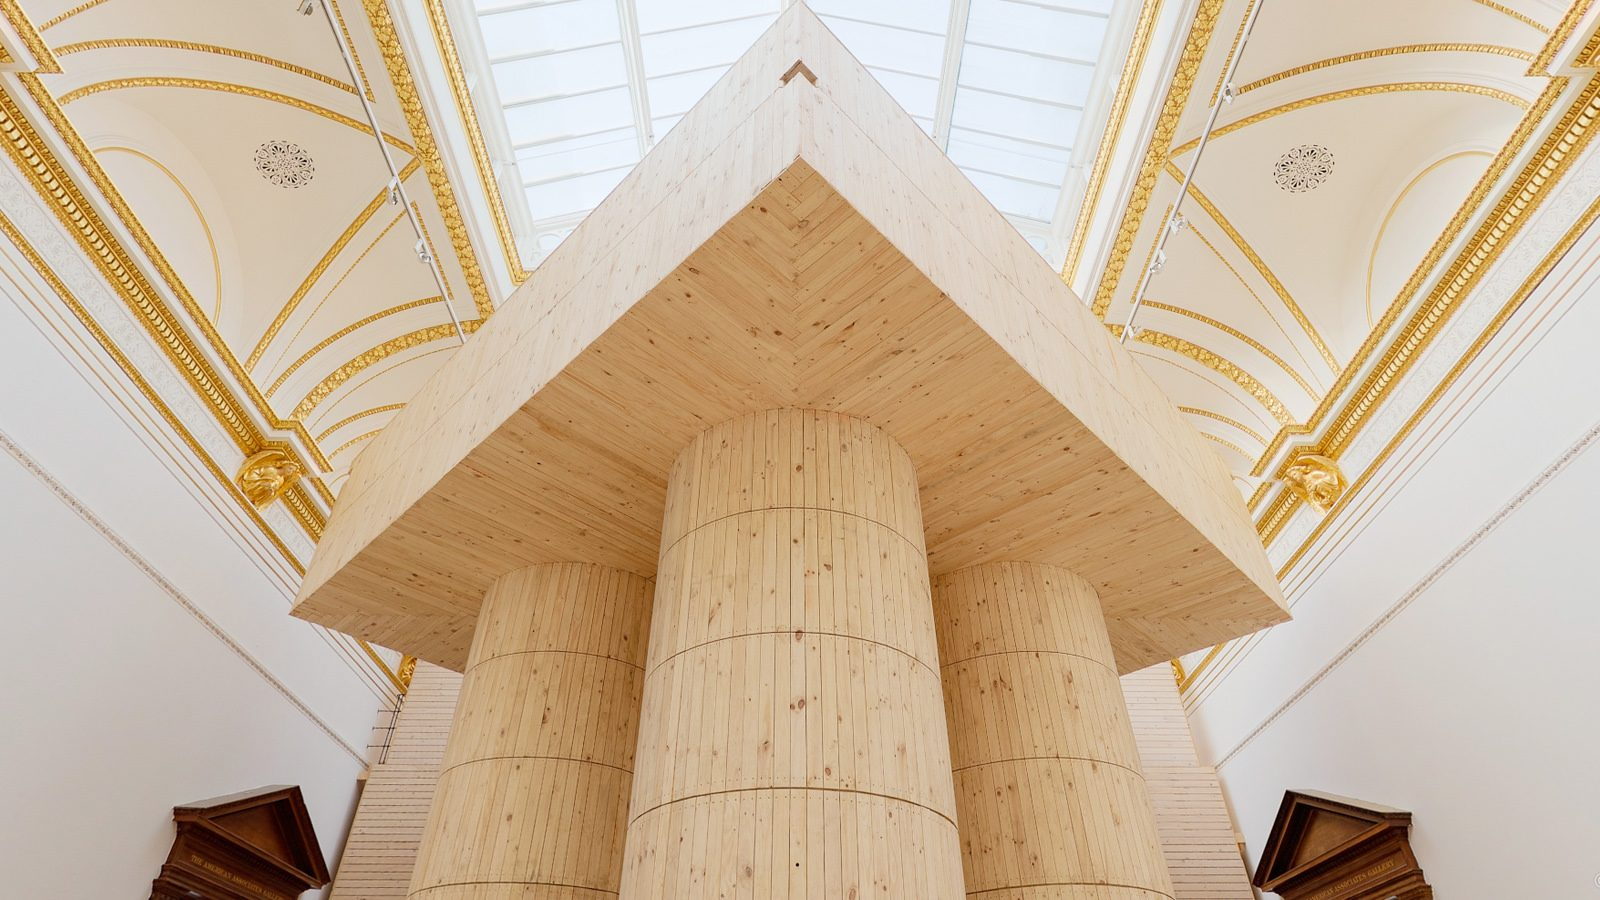 Art gallery virtual tour - Sensing Spaces at the Royal Academy